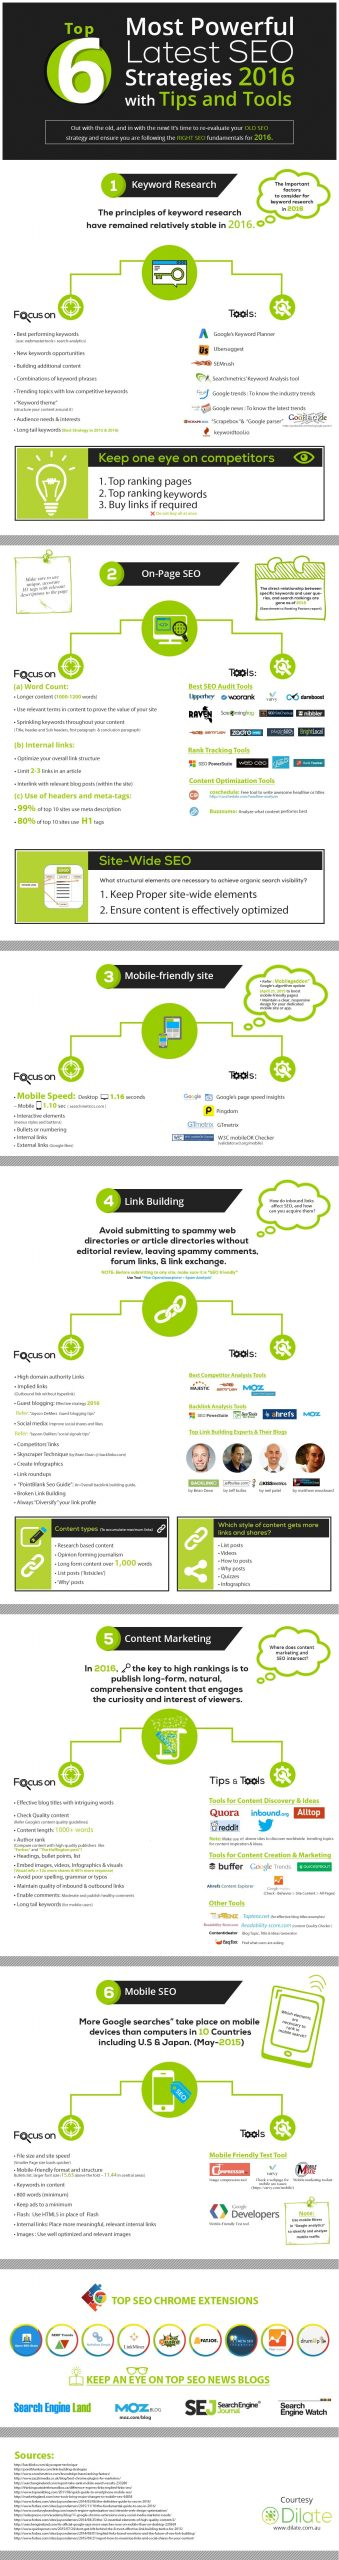 Top 6 Most Powerful Latest SEO Strategies 2016 with Tips & Tools infographic